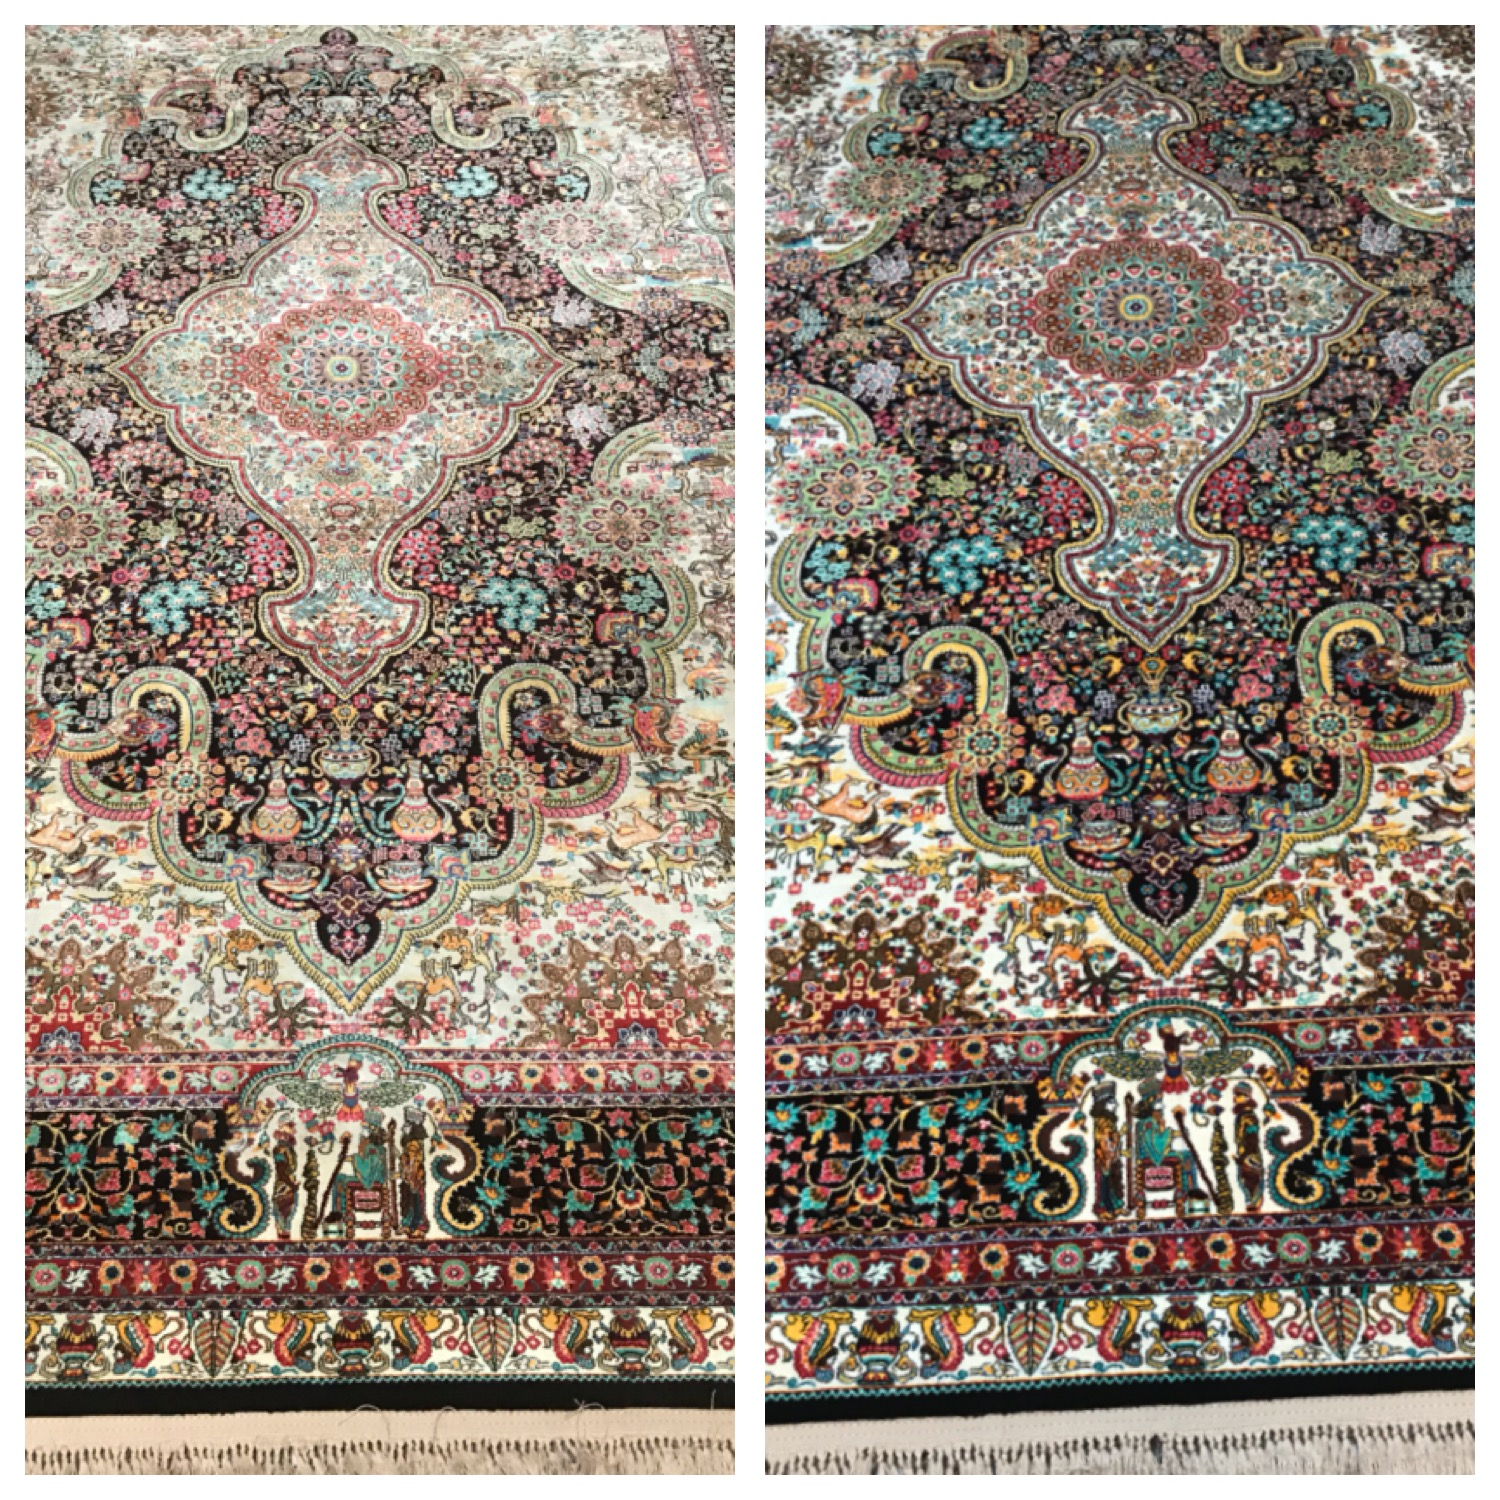 Rug cleaning Cheshire - Persian rug